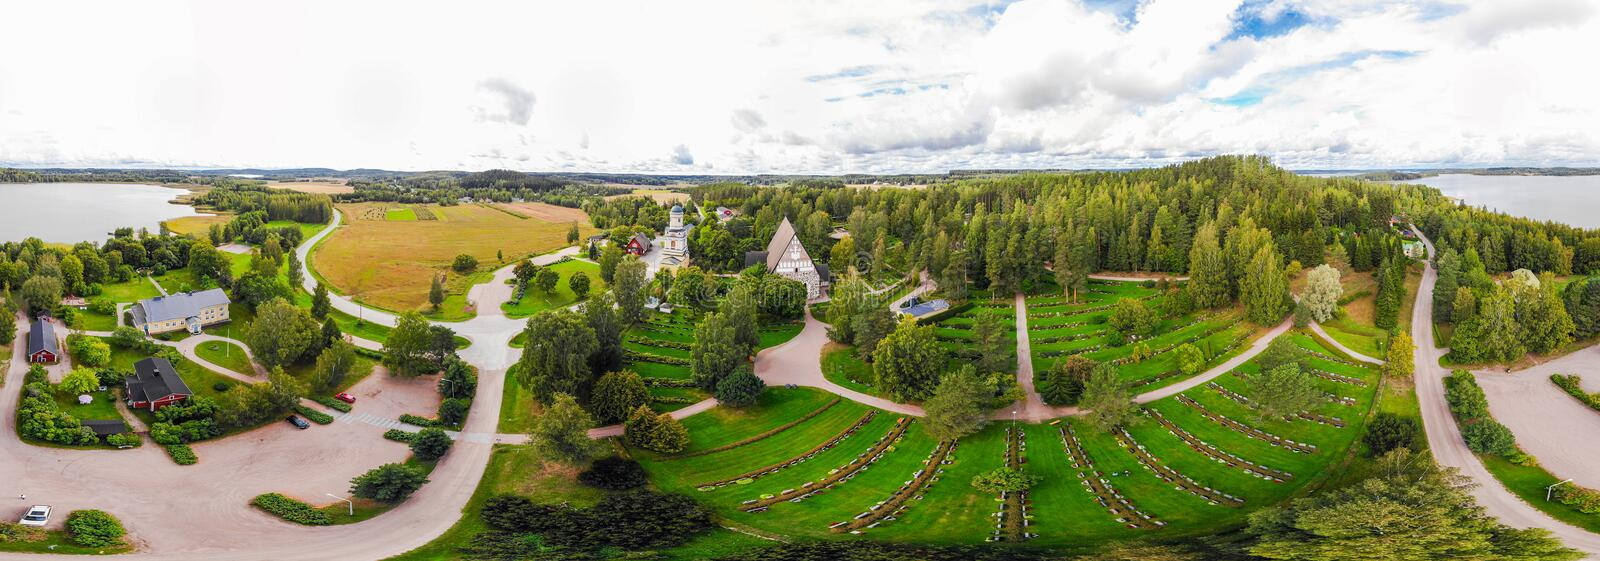 A three dimensional panoramic view of the medieval greystone Church of St. Mary in Hollola, Finland.  royalty free stock images